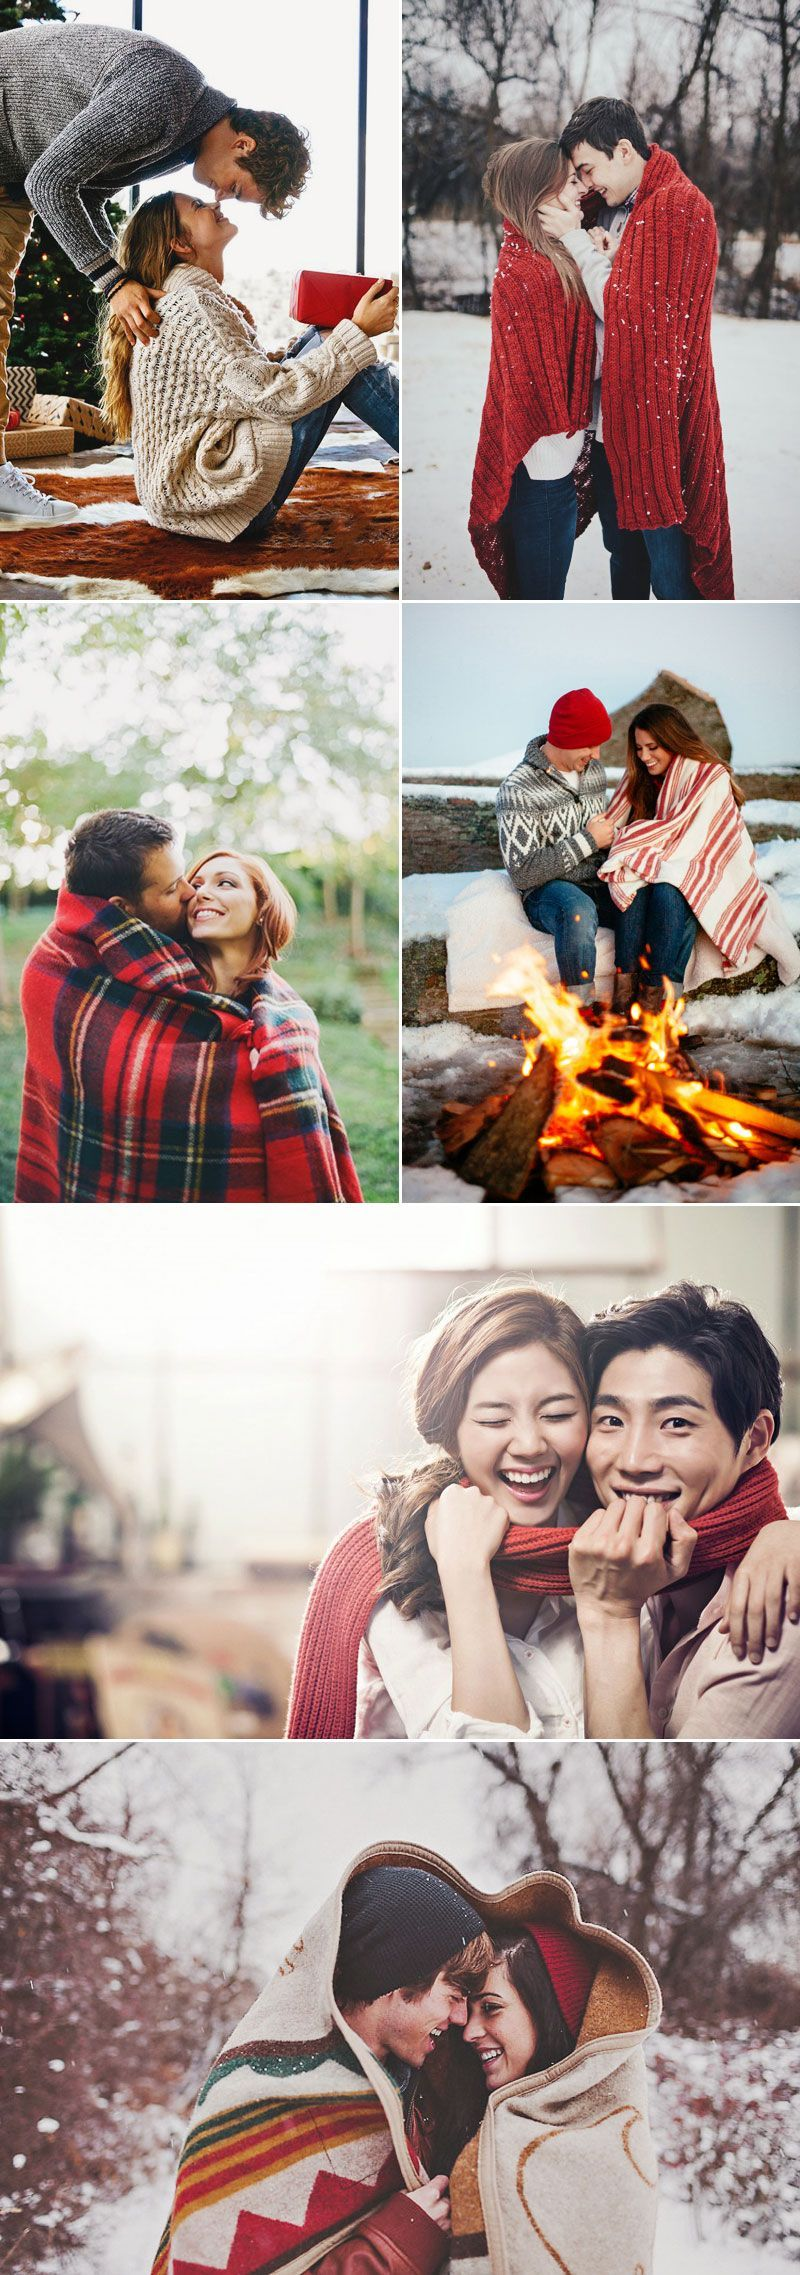 Cute Christmas Photo Ideas for Couples to Show Love The greatest Christmas joy comes out of spending quality time with your loved ones to appreciate each other and just to have fun.  Remember to capture this love and joy with some memorable Christmas photos to make your holidays more romantic! Here are some sweet Christmas photo ideas for couples who want